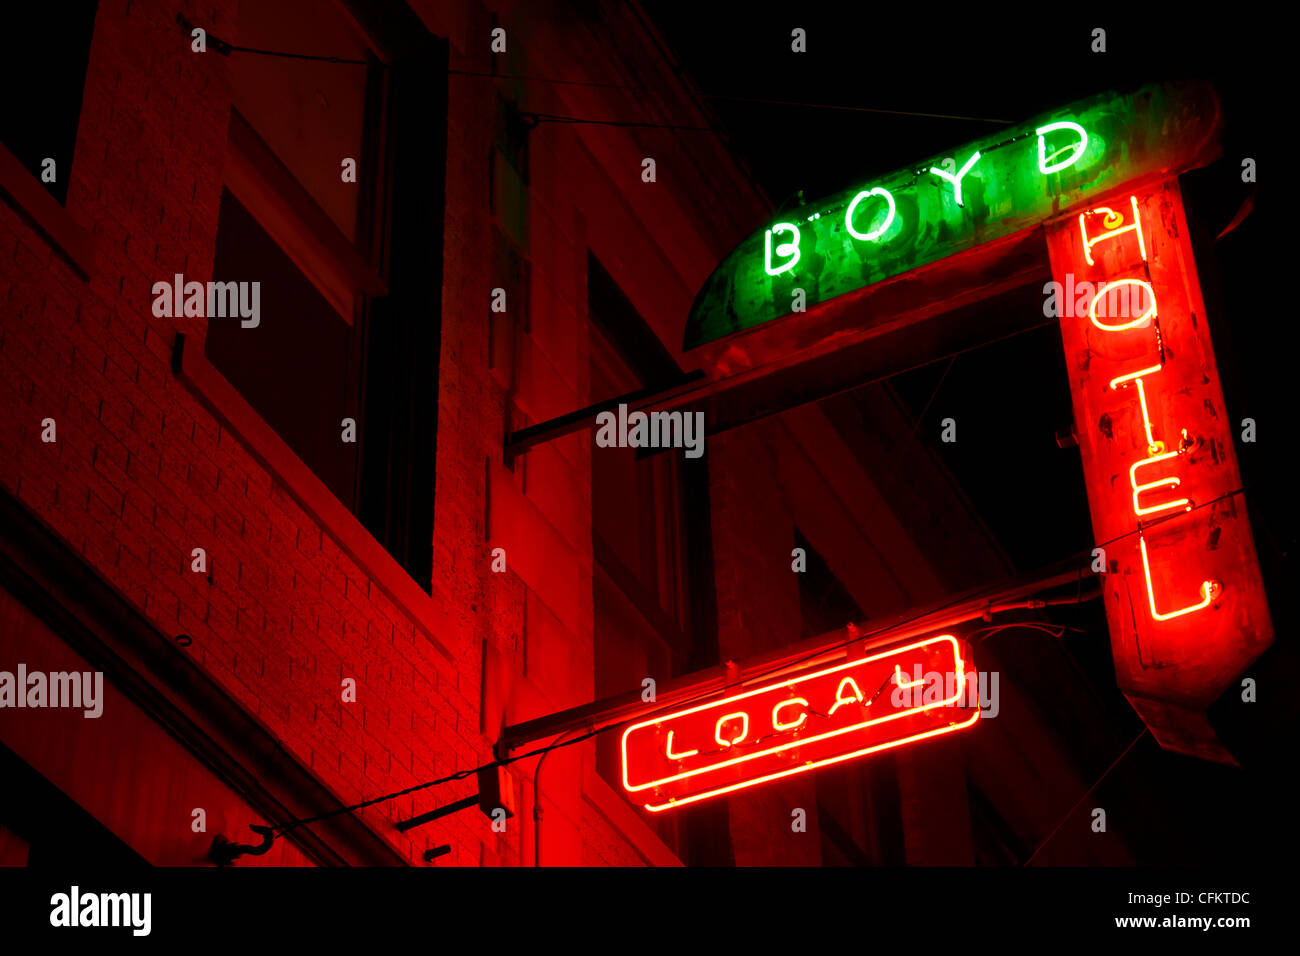 Neon lights at Boyd Hotel in Deep Ellum (Dallas, Texas). - Stock Image